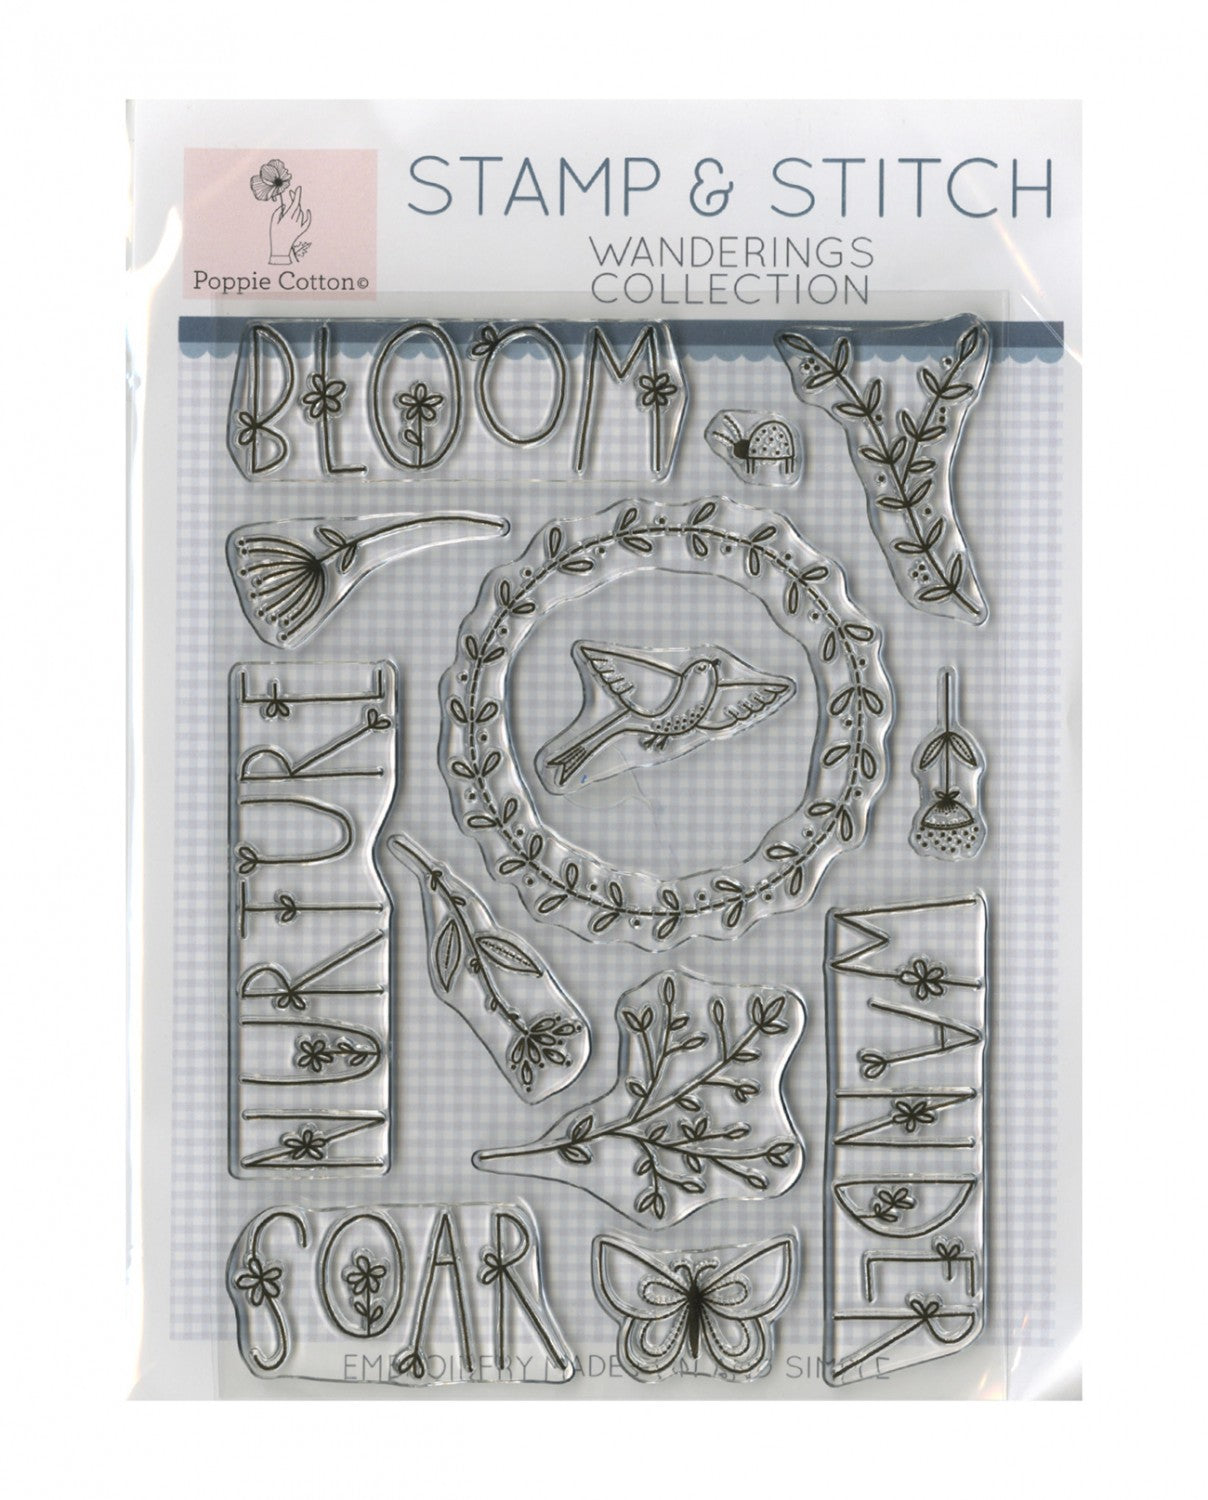 Stamp and Stitch Wanderings Collection by Poppie Cotton